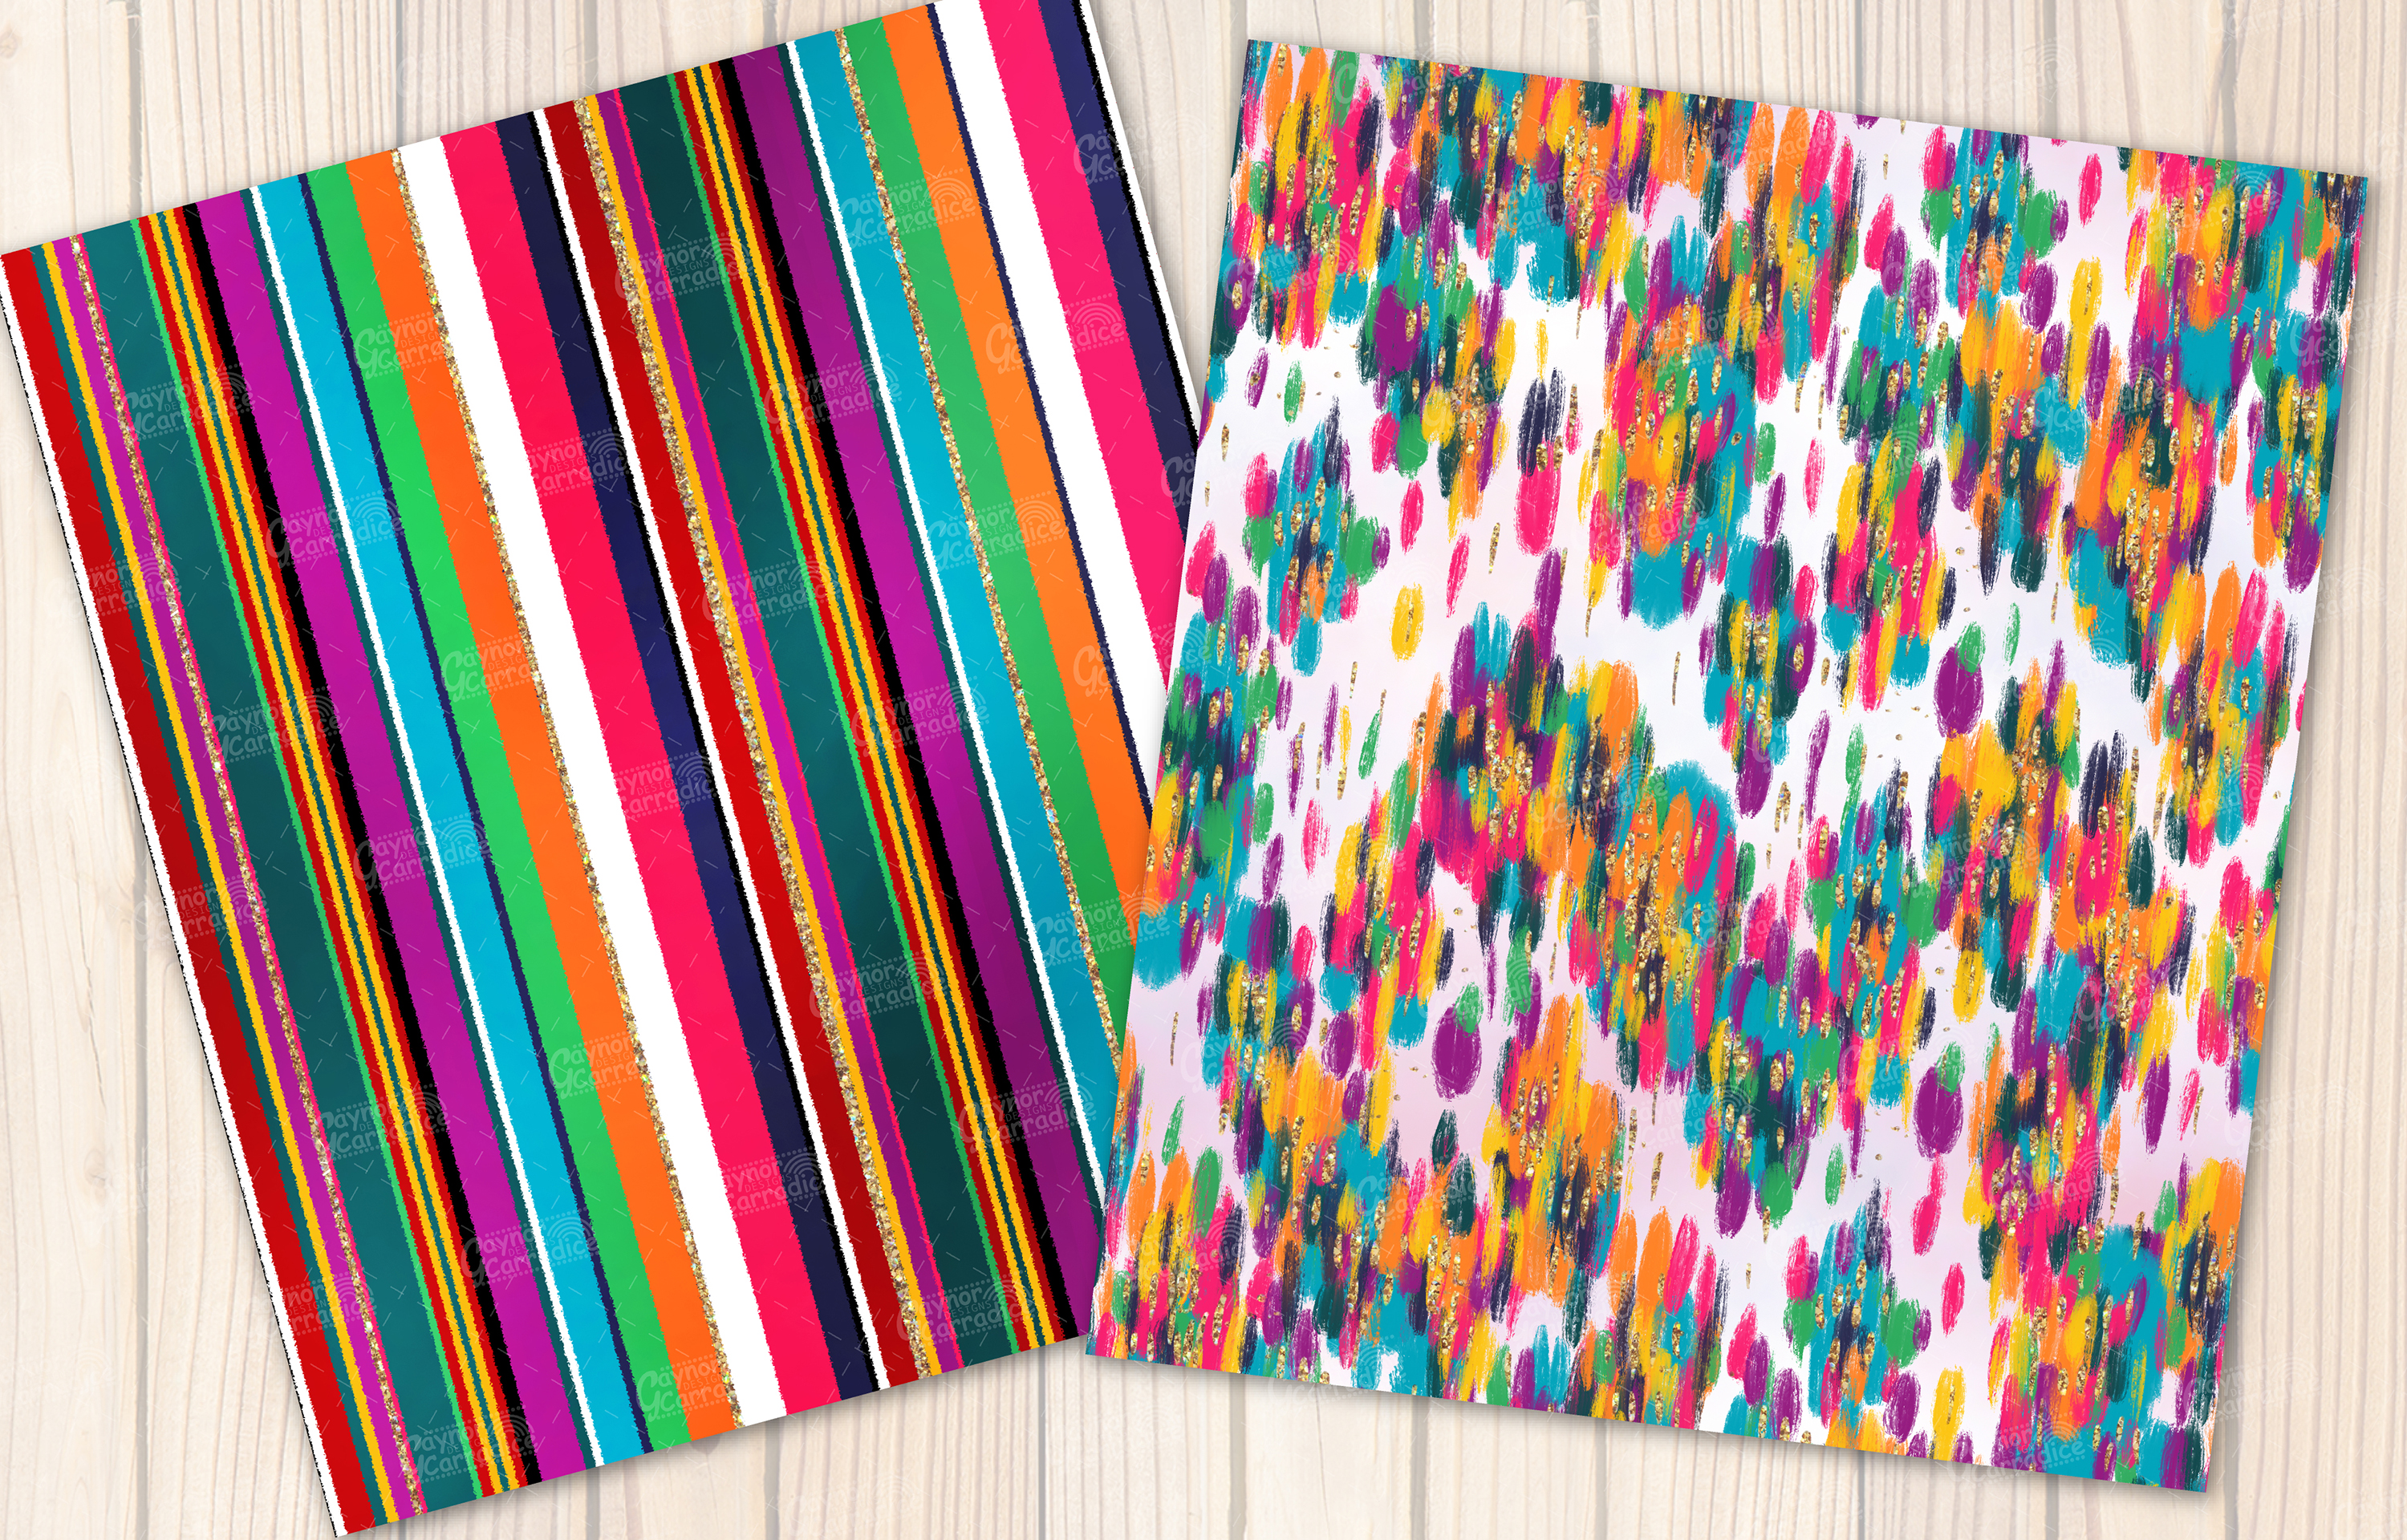 Lola - Mecian cinco de mayo Seamless Pattern collection example image 2